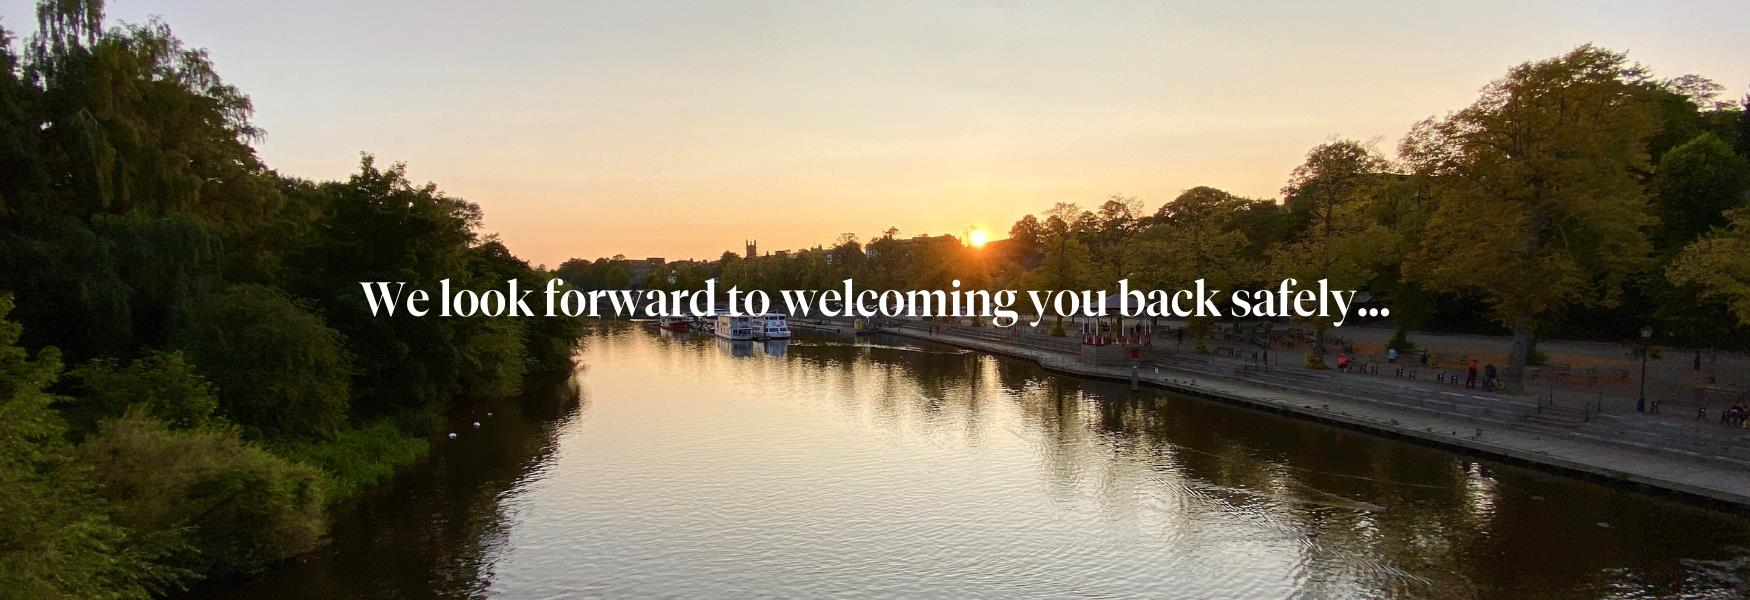 We look forward to welcoming you back safely